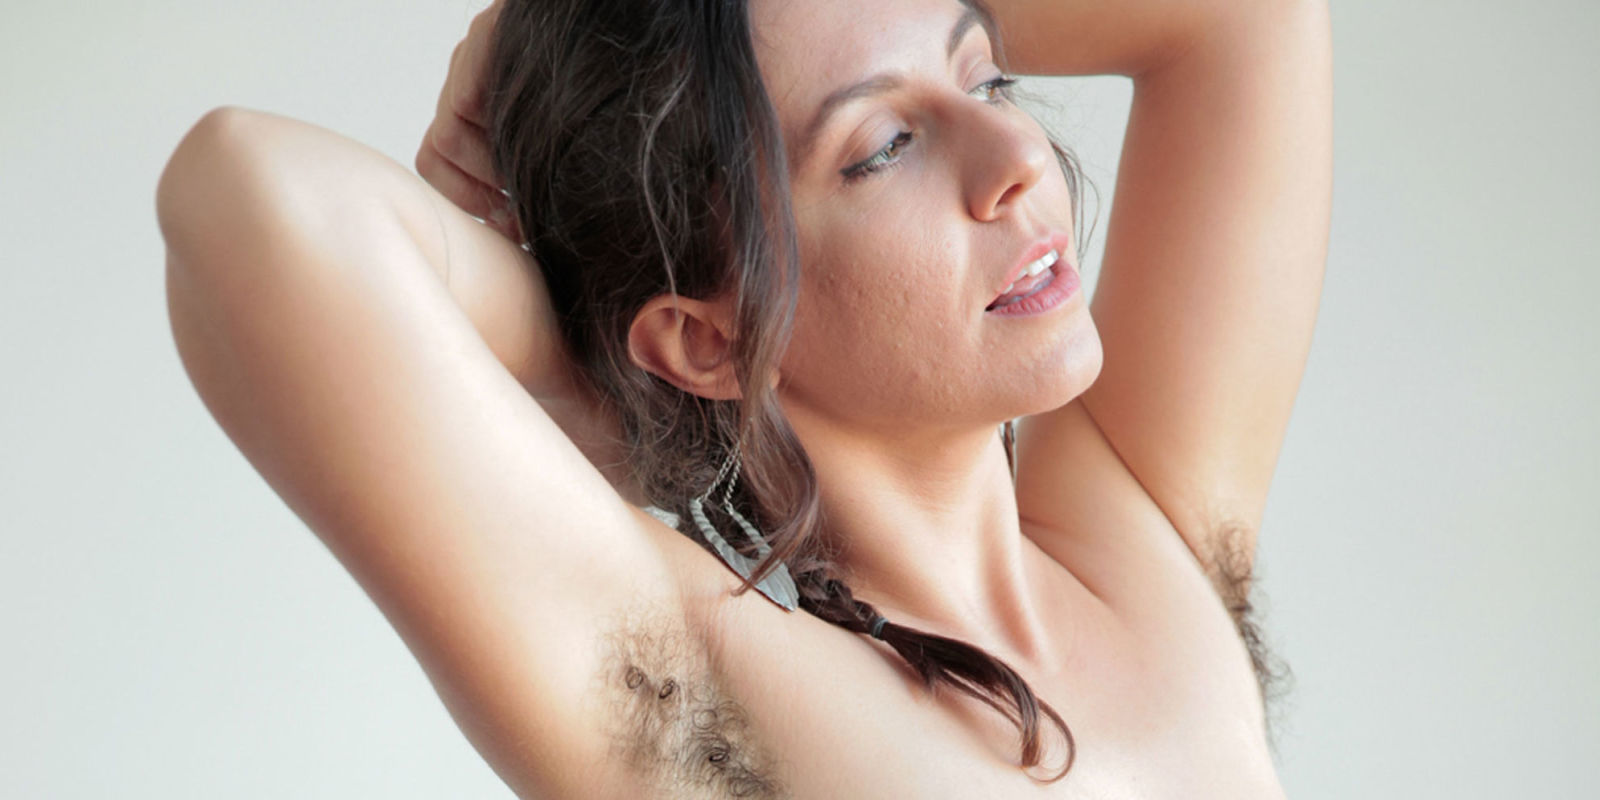 hairy women webcam